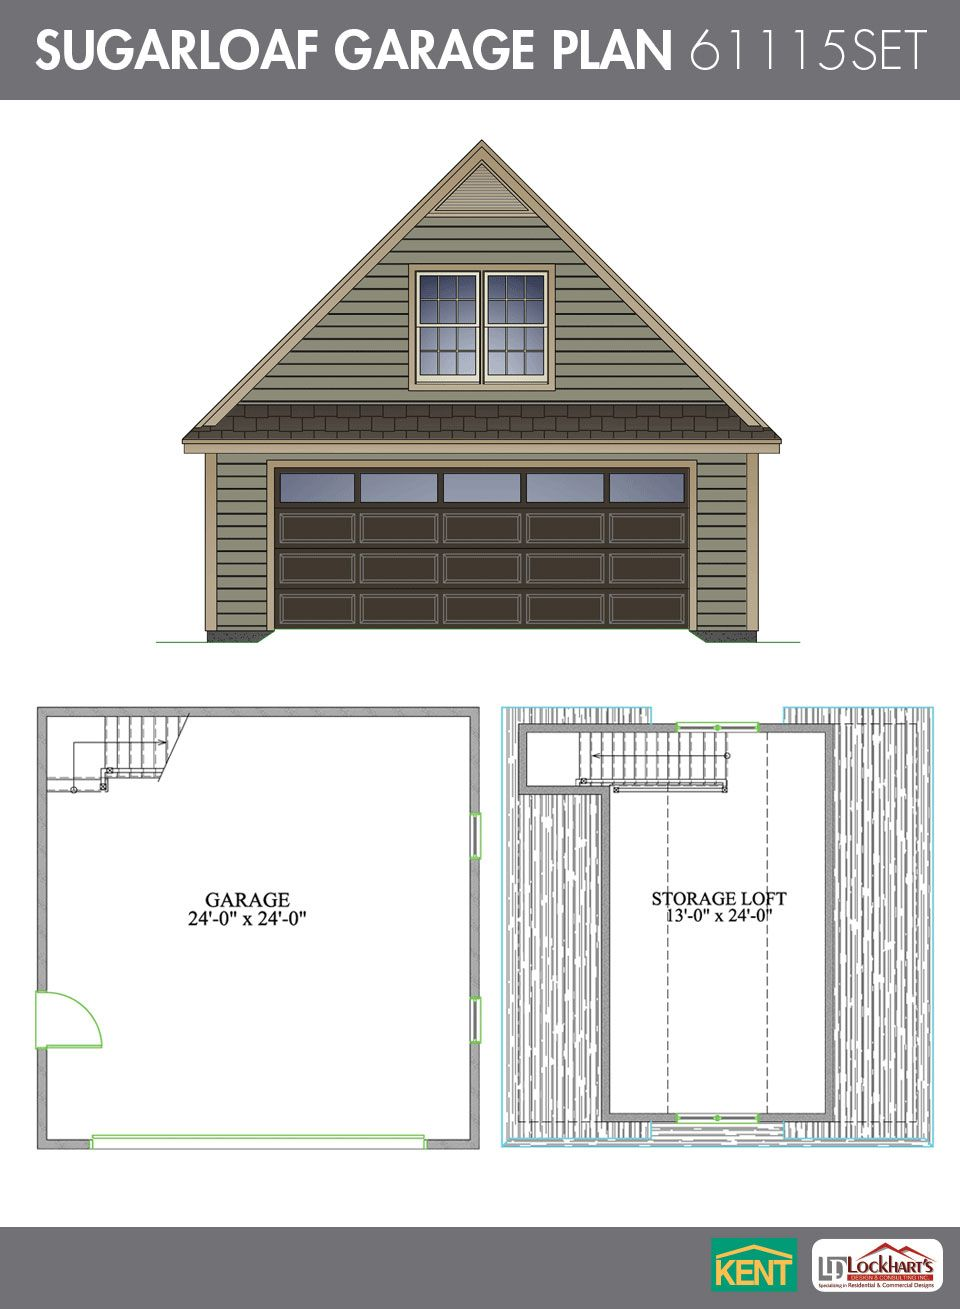 Two Car Garage Plan With Workshop Striking Attic Roof Shop Plans By Behm D Traintoball Garage Plans Detached Garage Plans With Loft Garage Plans